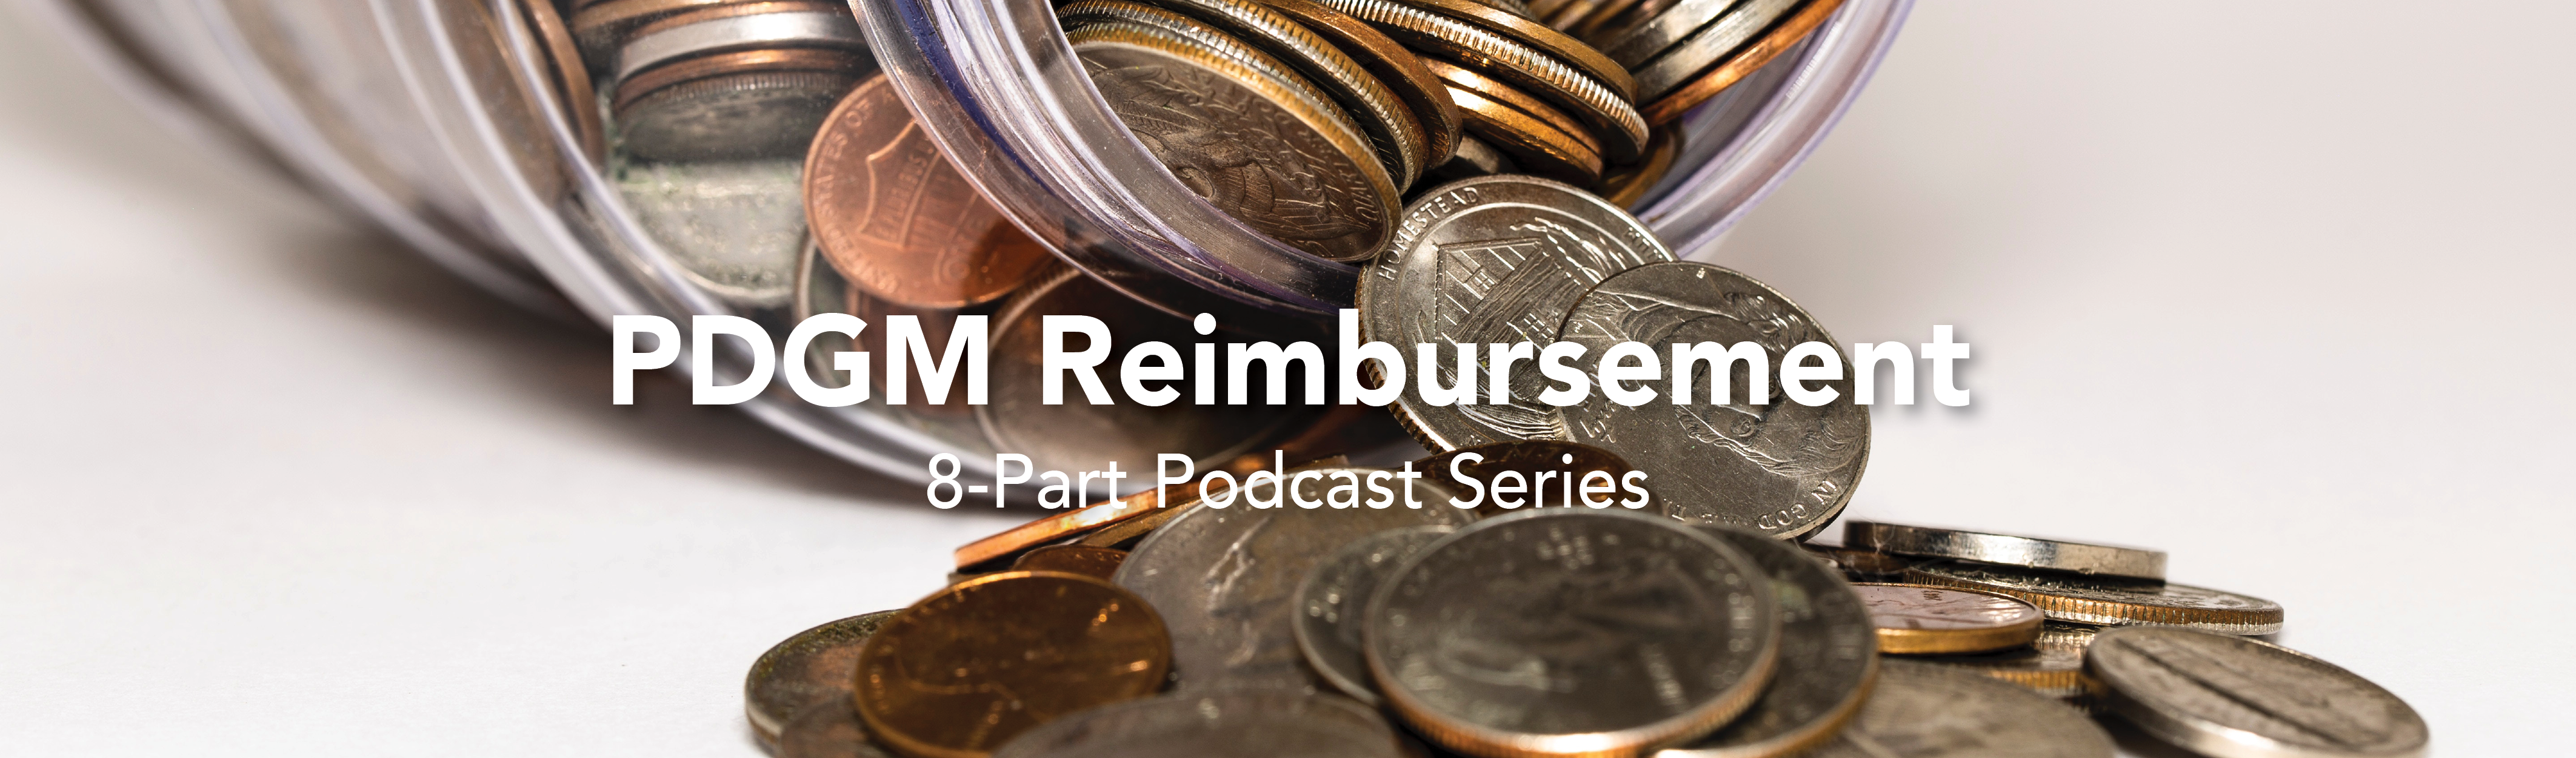 PDGM Reimbursement Podcast Series